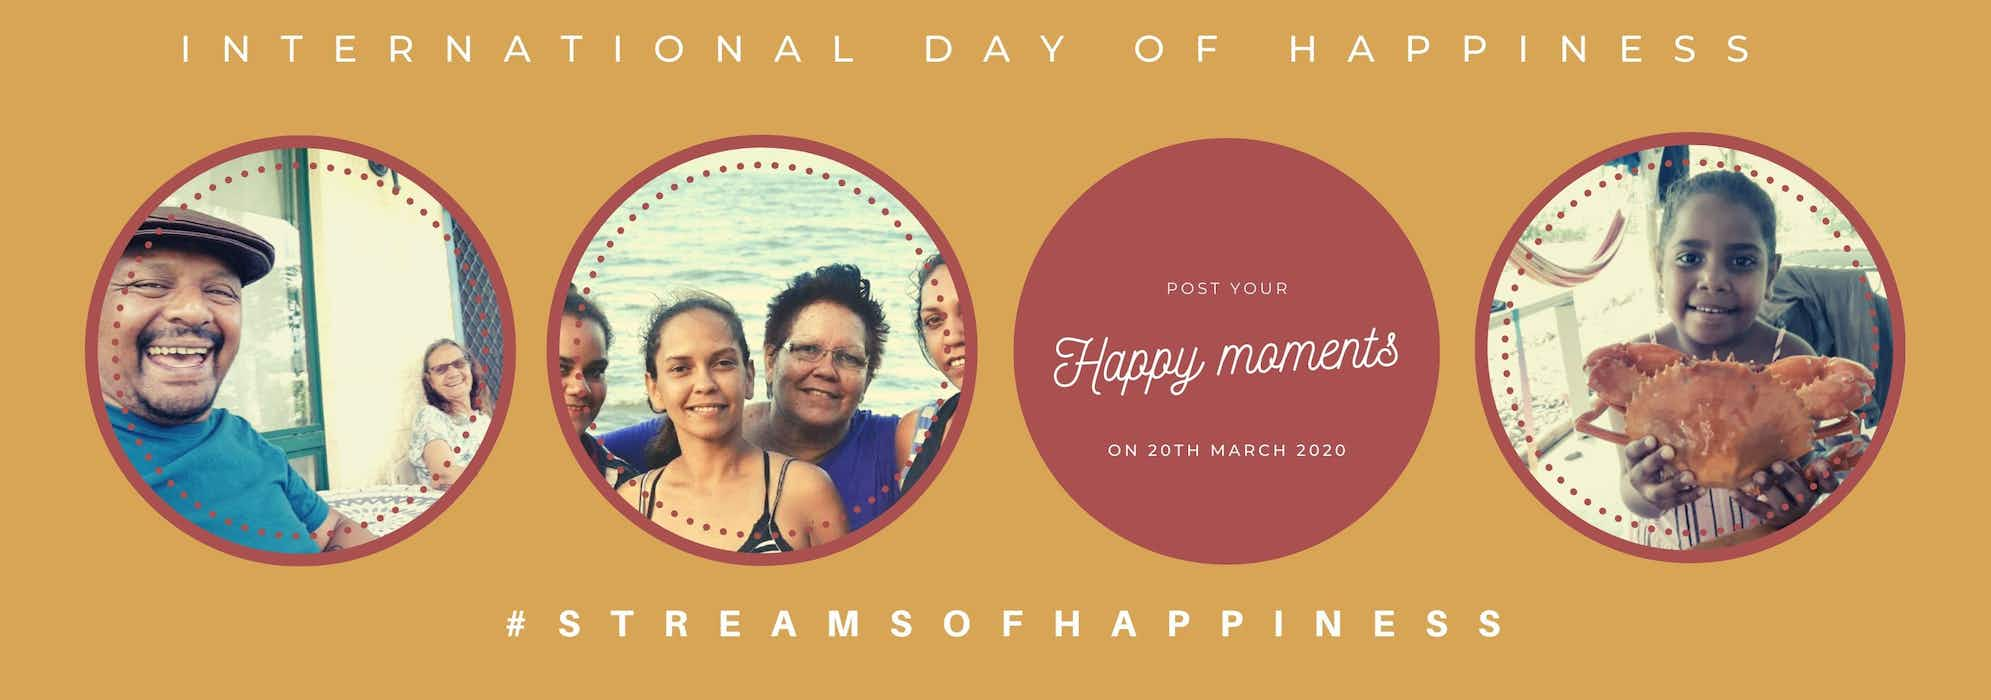 Update International Day of Happiness